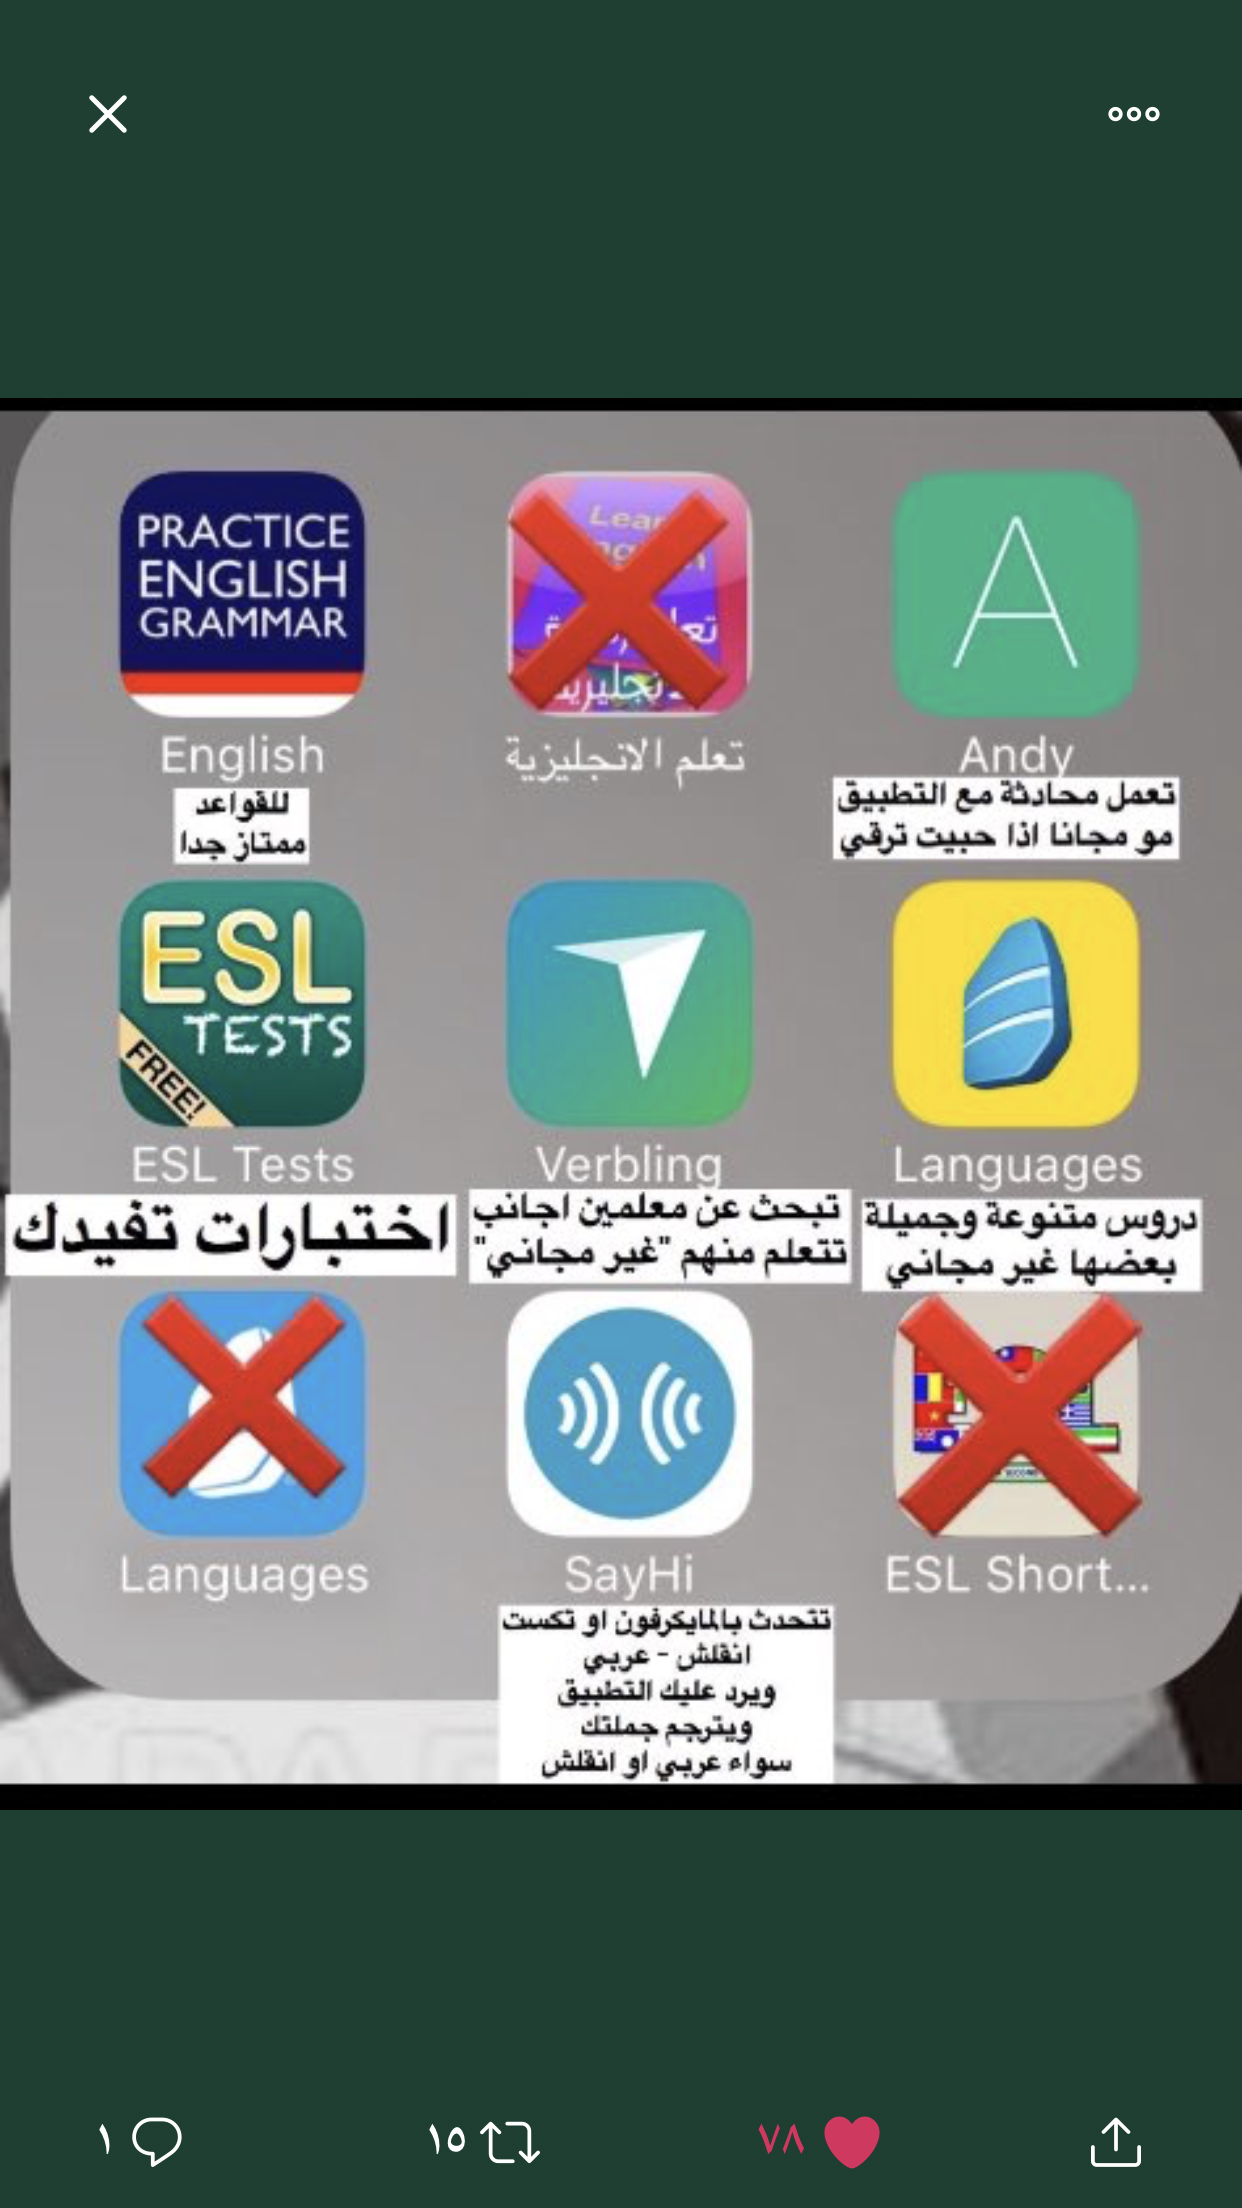 Pin By Bashayer On برامج تعليميه Learning Websites Iphone App Layout Application Iphone